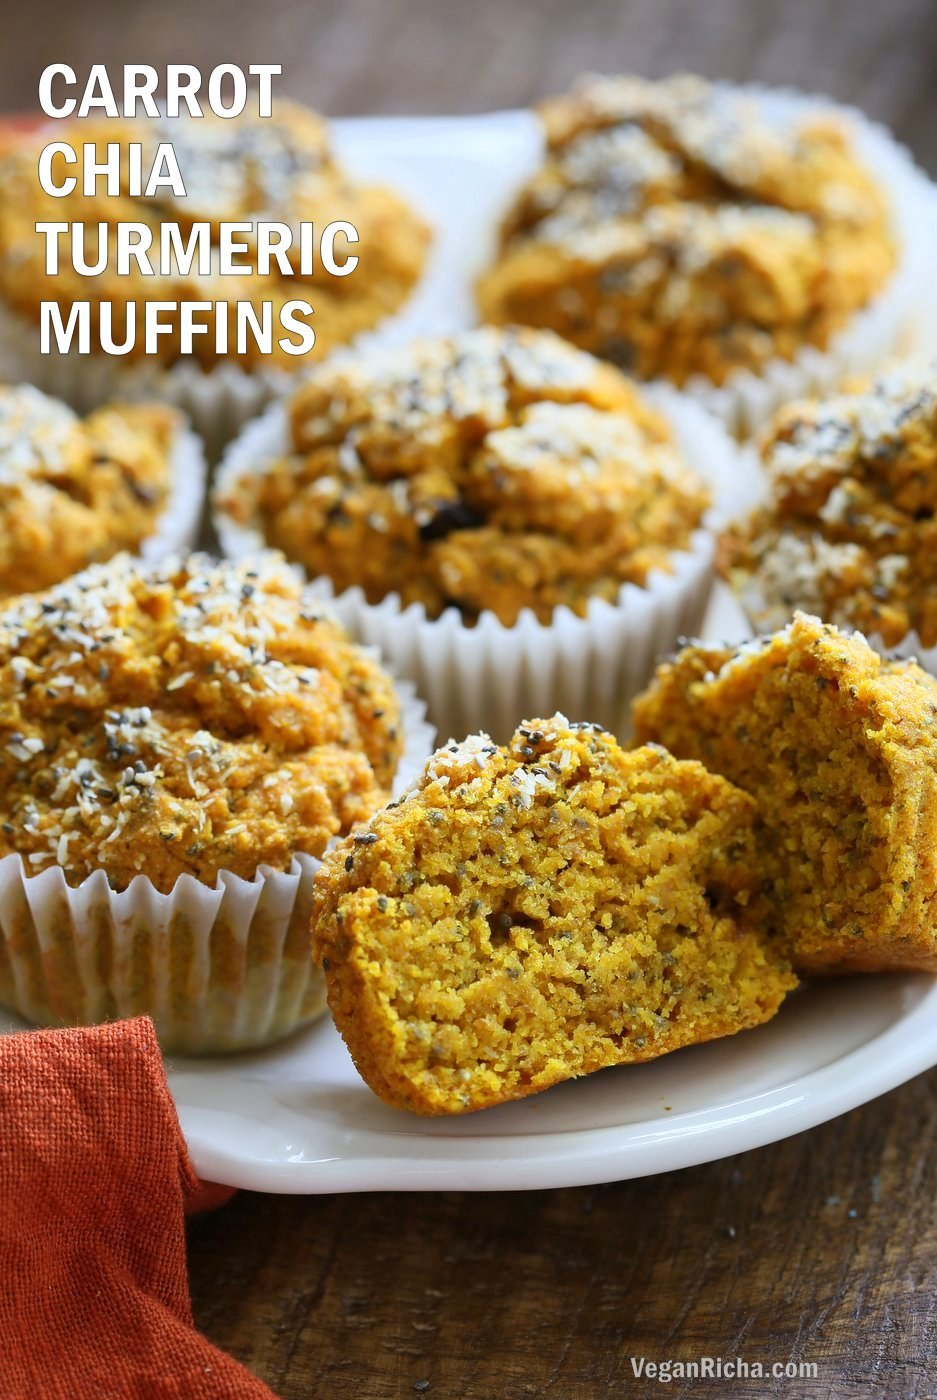 Vegan Turmeric Carrot Muffins. These sunshine muffins have carrots, dry or fresh turmeric, fresh ginger and chia seeds. Coconut rounds up the flavor for a caramelized carrot ginger turmeric profile. Add nuts or dried fruit of choice to these Turmeric muffins. No added sugar or oil needed. #Vegan #Soyfree #Nutfree #Recipe #TurmericCarrotMuffins #VeganRicha Gluten-free option| VeganRicha.com